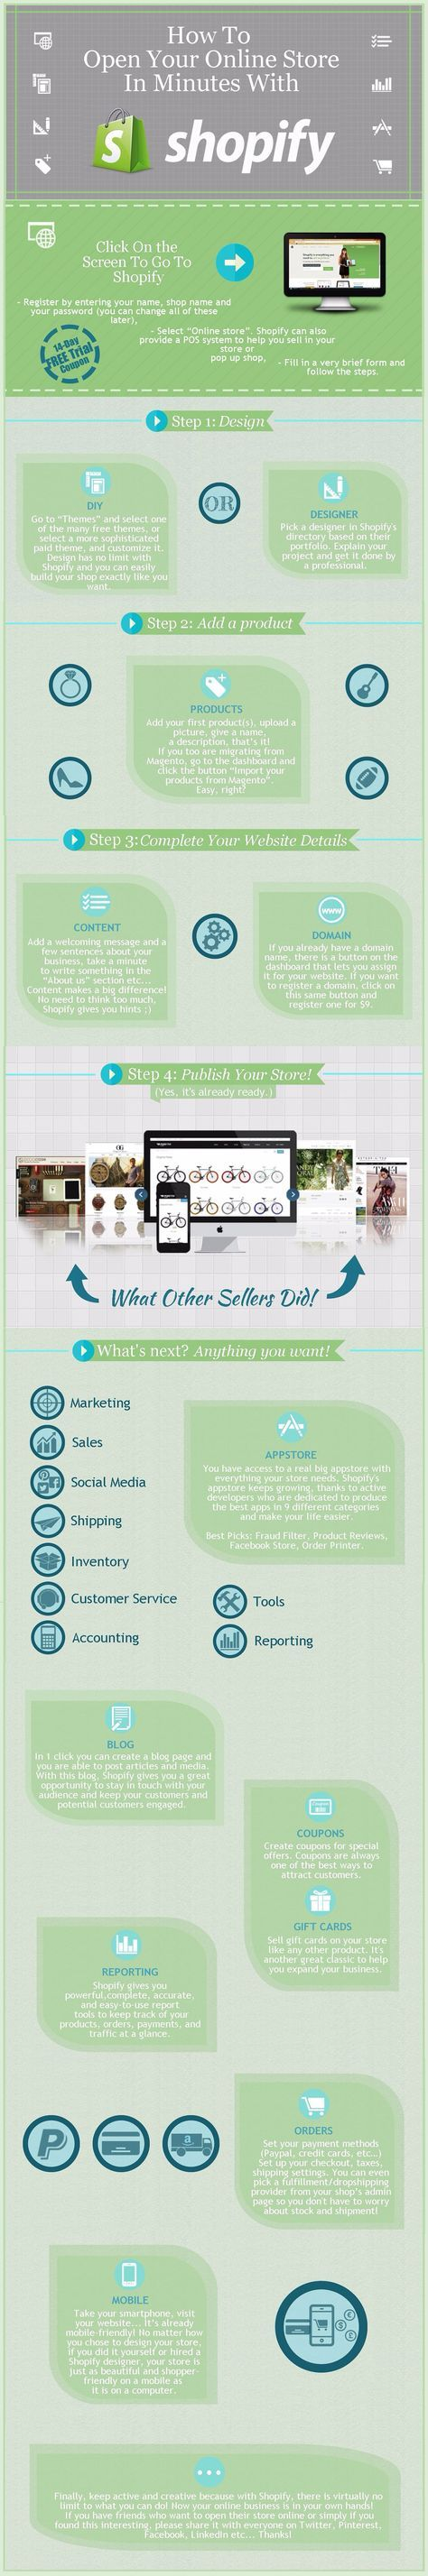 How to Use Shopify to Open Your Online Store in Minutes Infographic. Topic: ecommerce platform, online business, woocommerce, bigcommerce, prestshop, shopping cart, website builder.